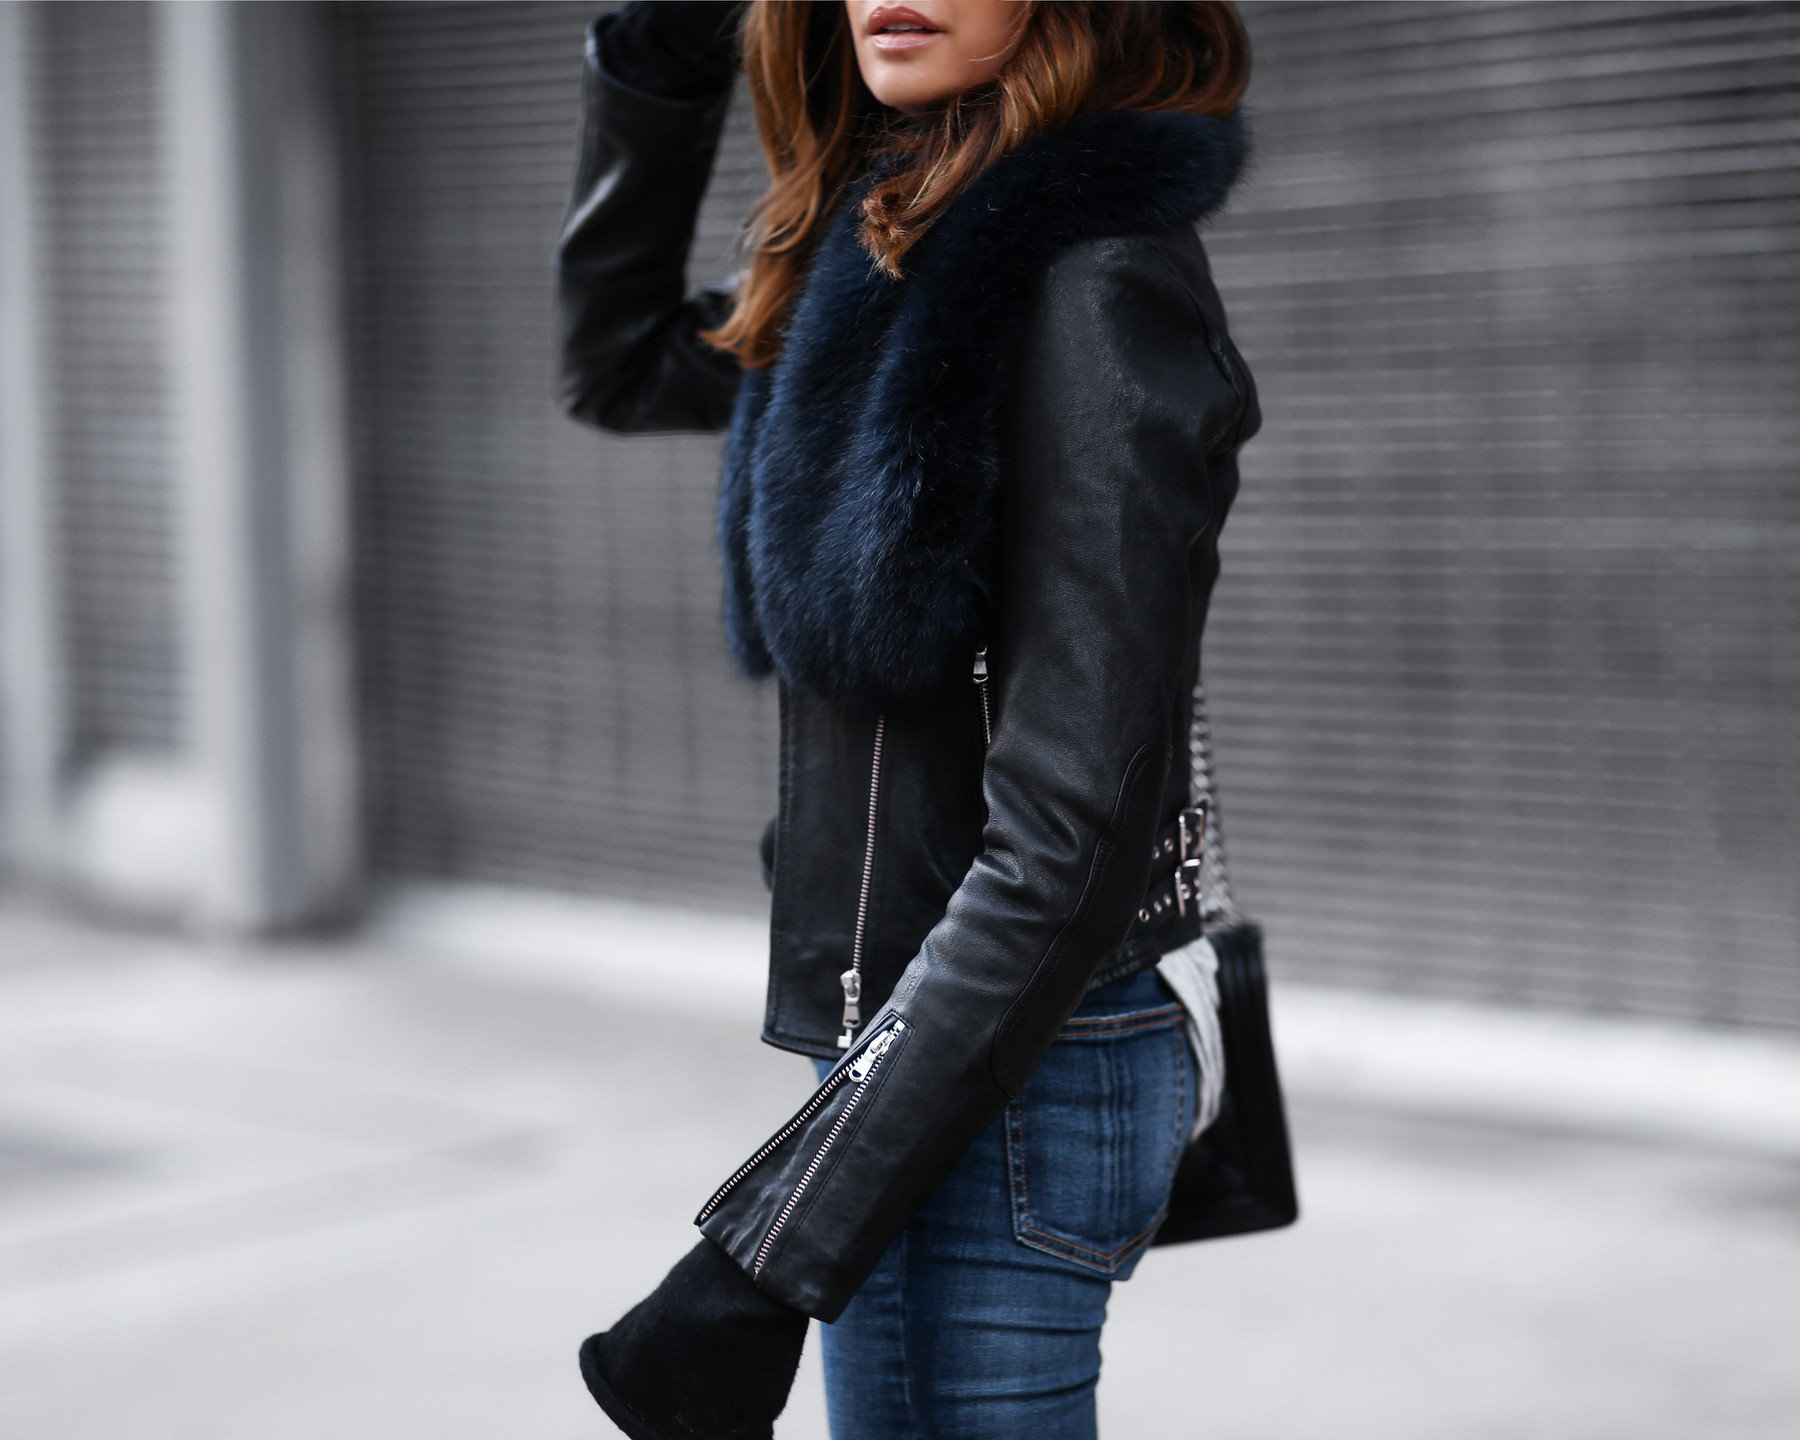 black leather jacket, raw hem skinny jeans, faux fur stole, chanel bag